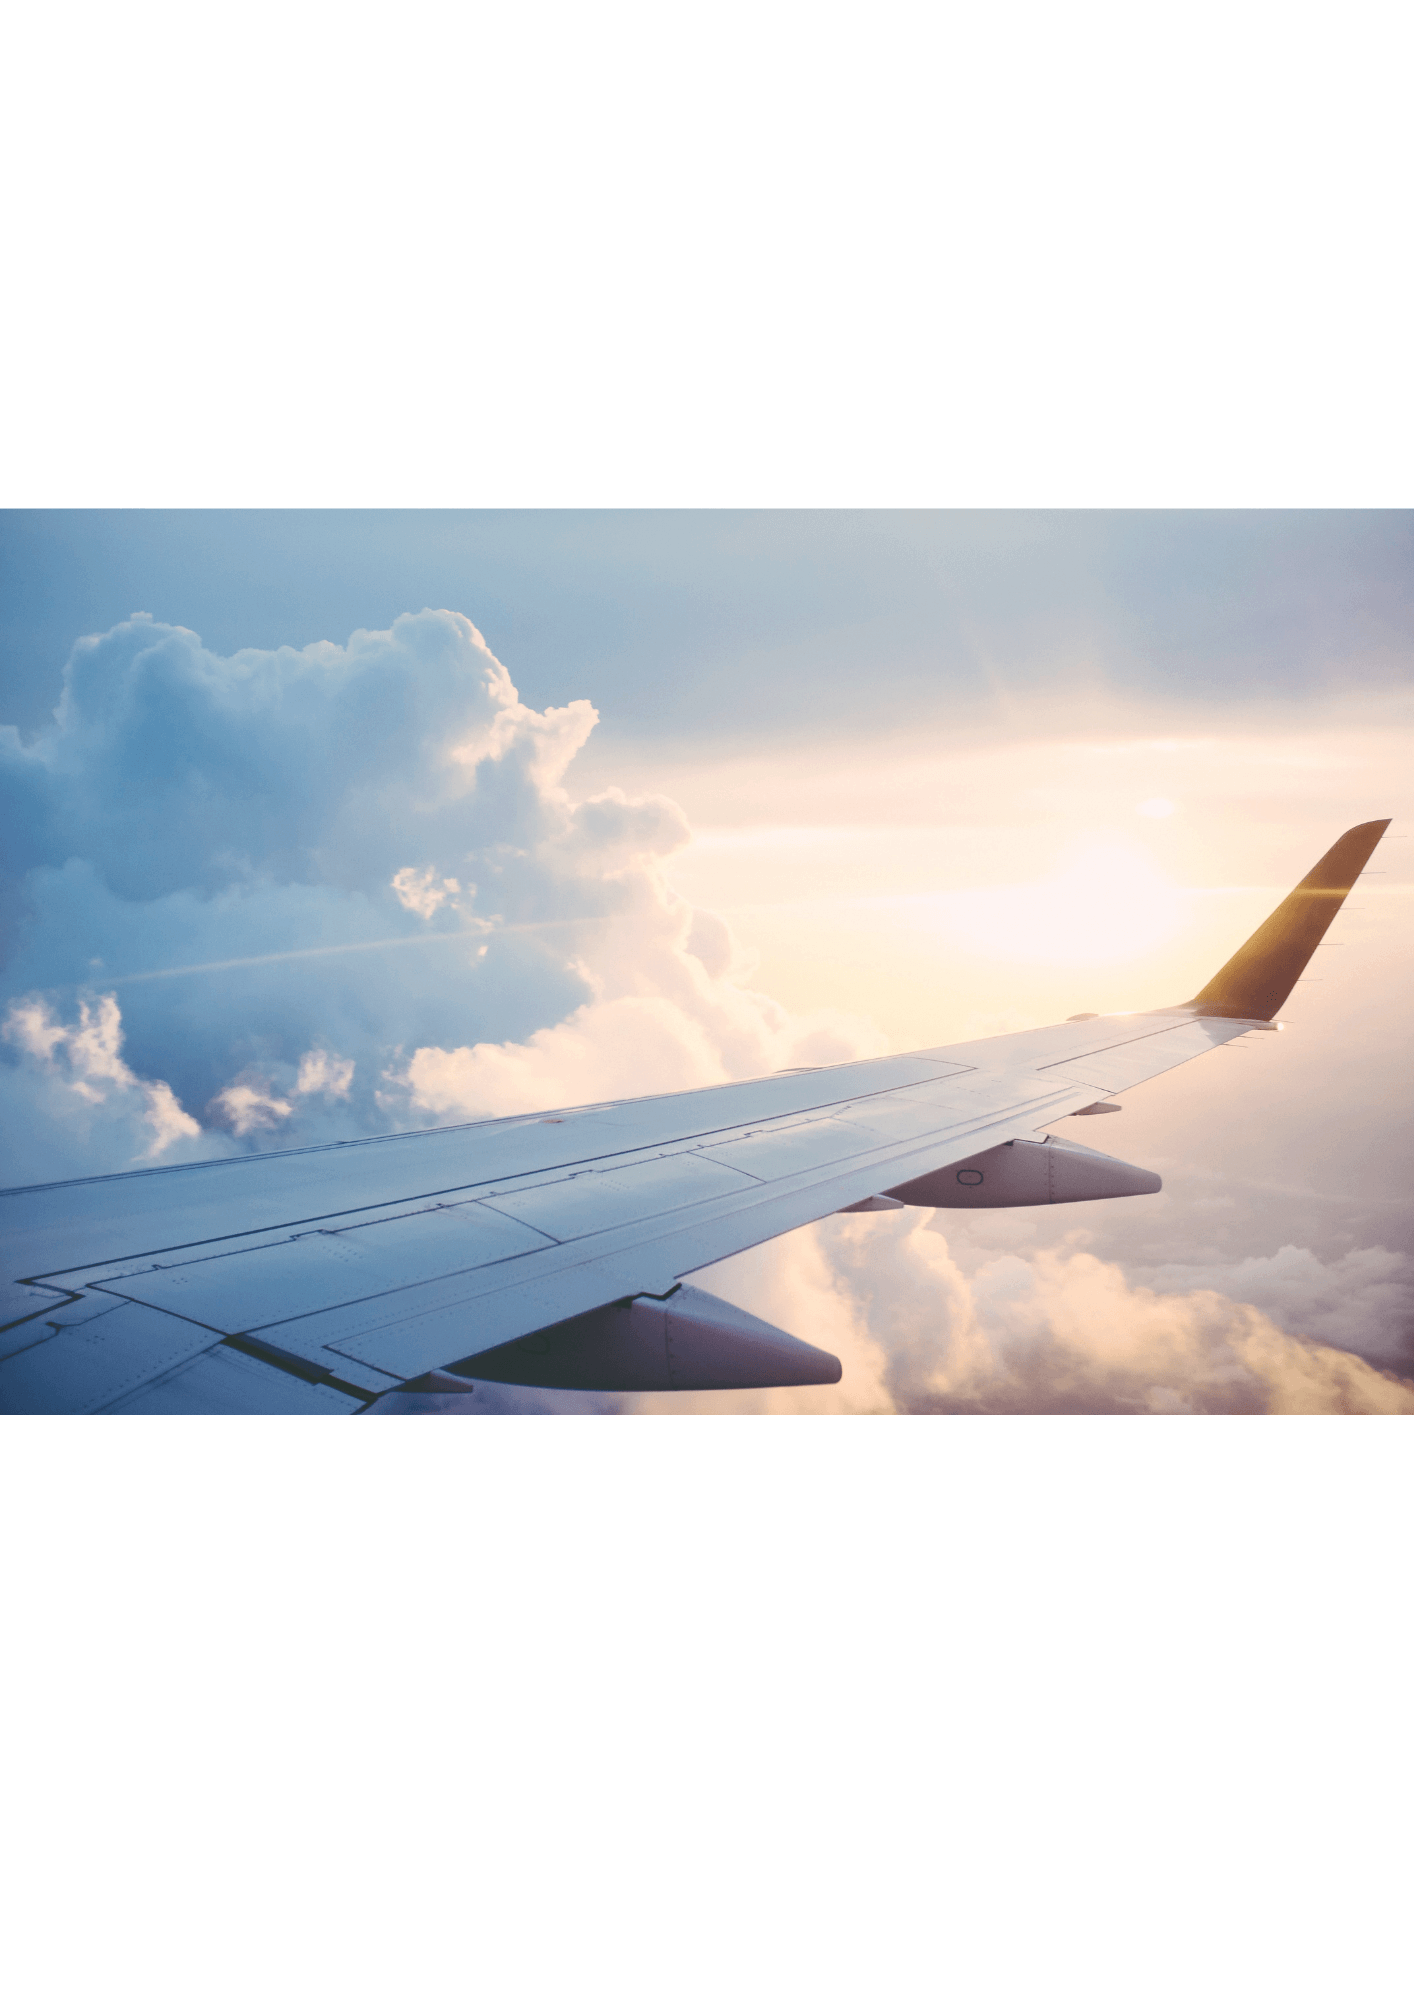 Airline: MMM Measurement to Cope with Crisis